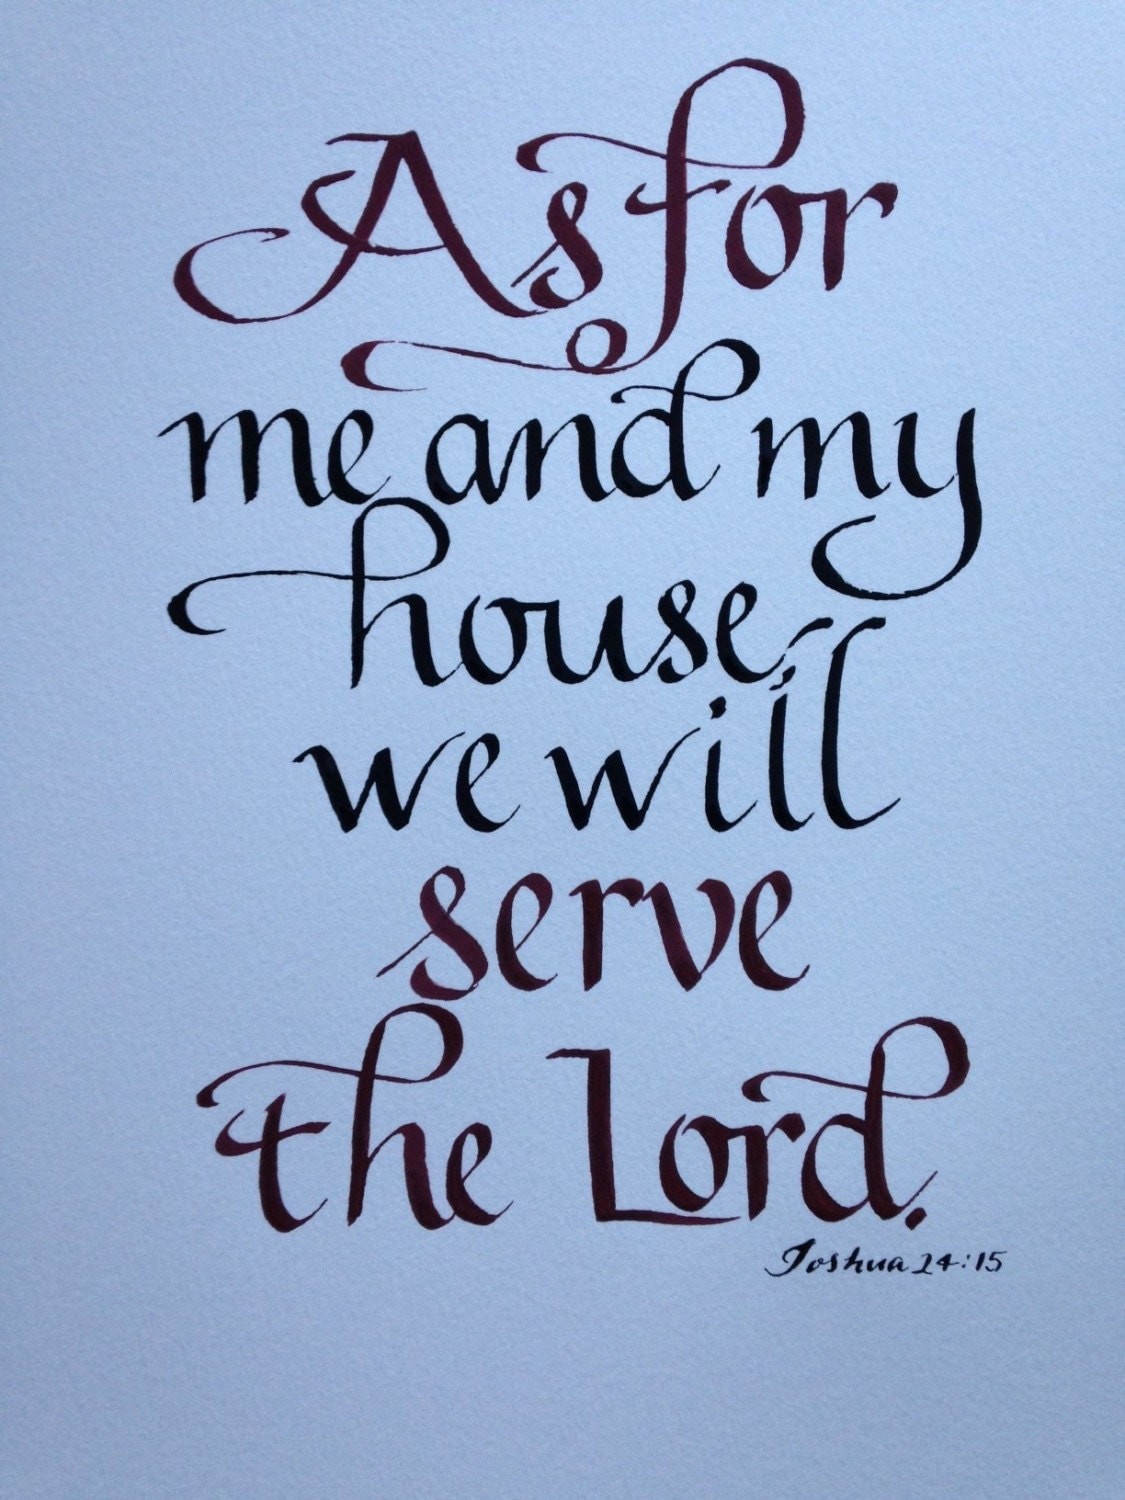 Custom Calligraphy Bible Verse Wall Art New By